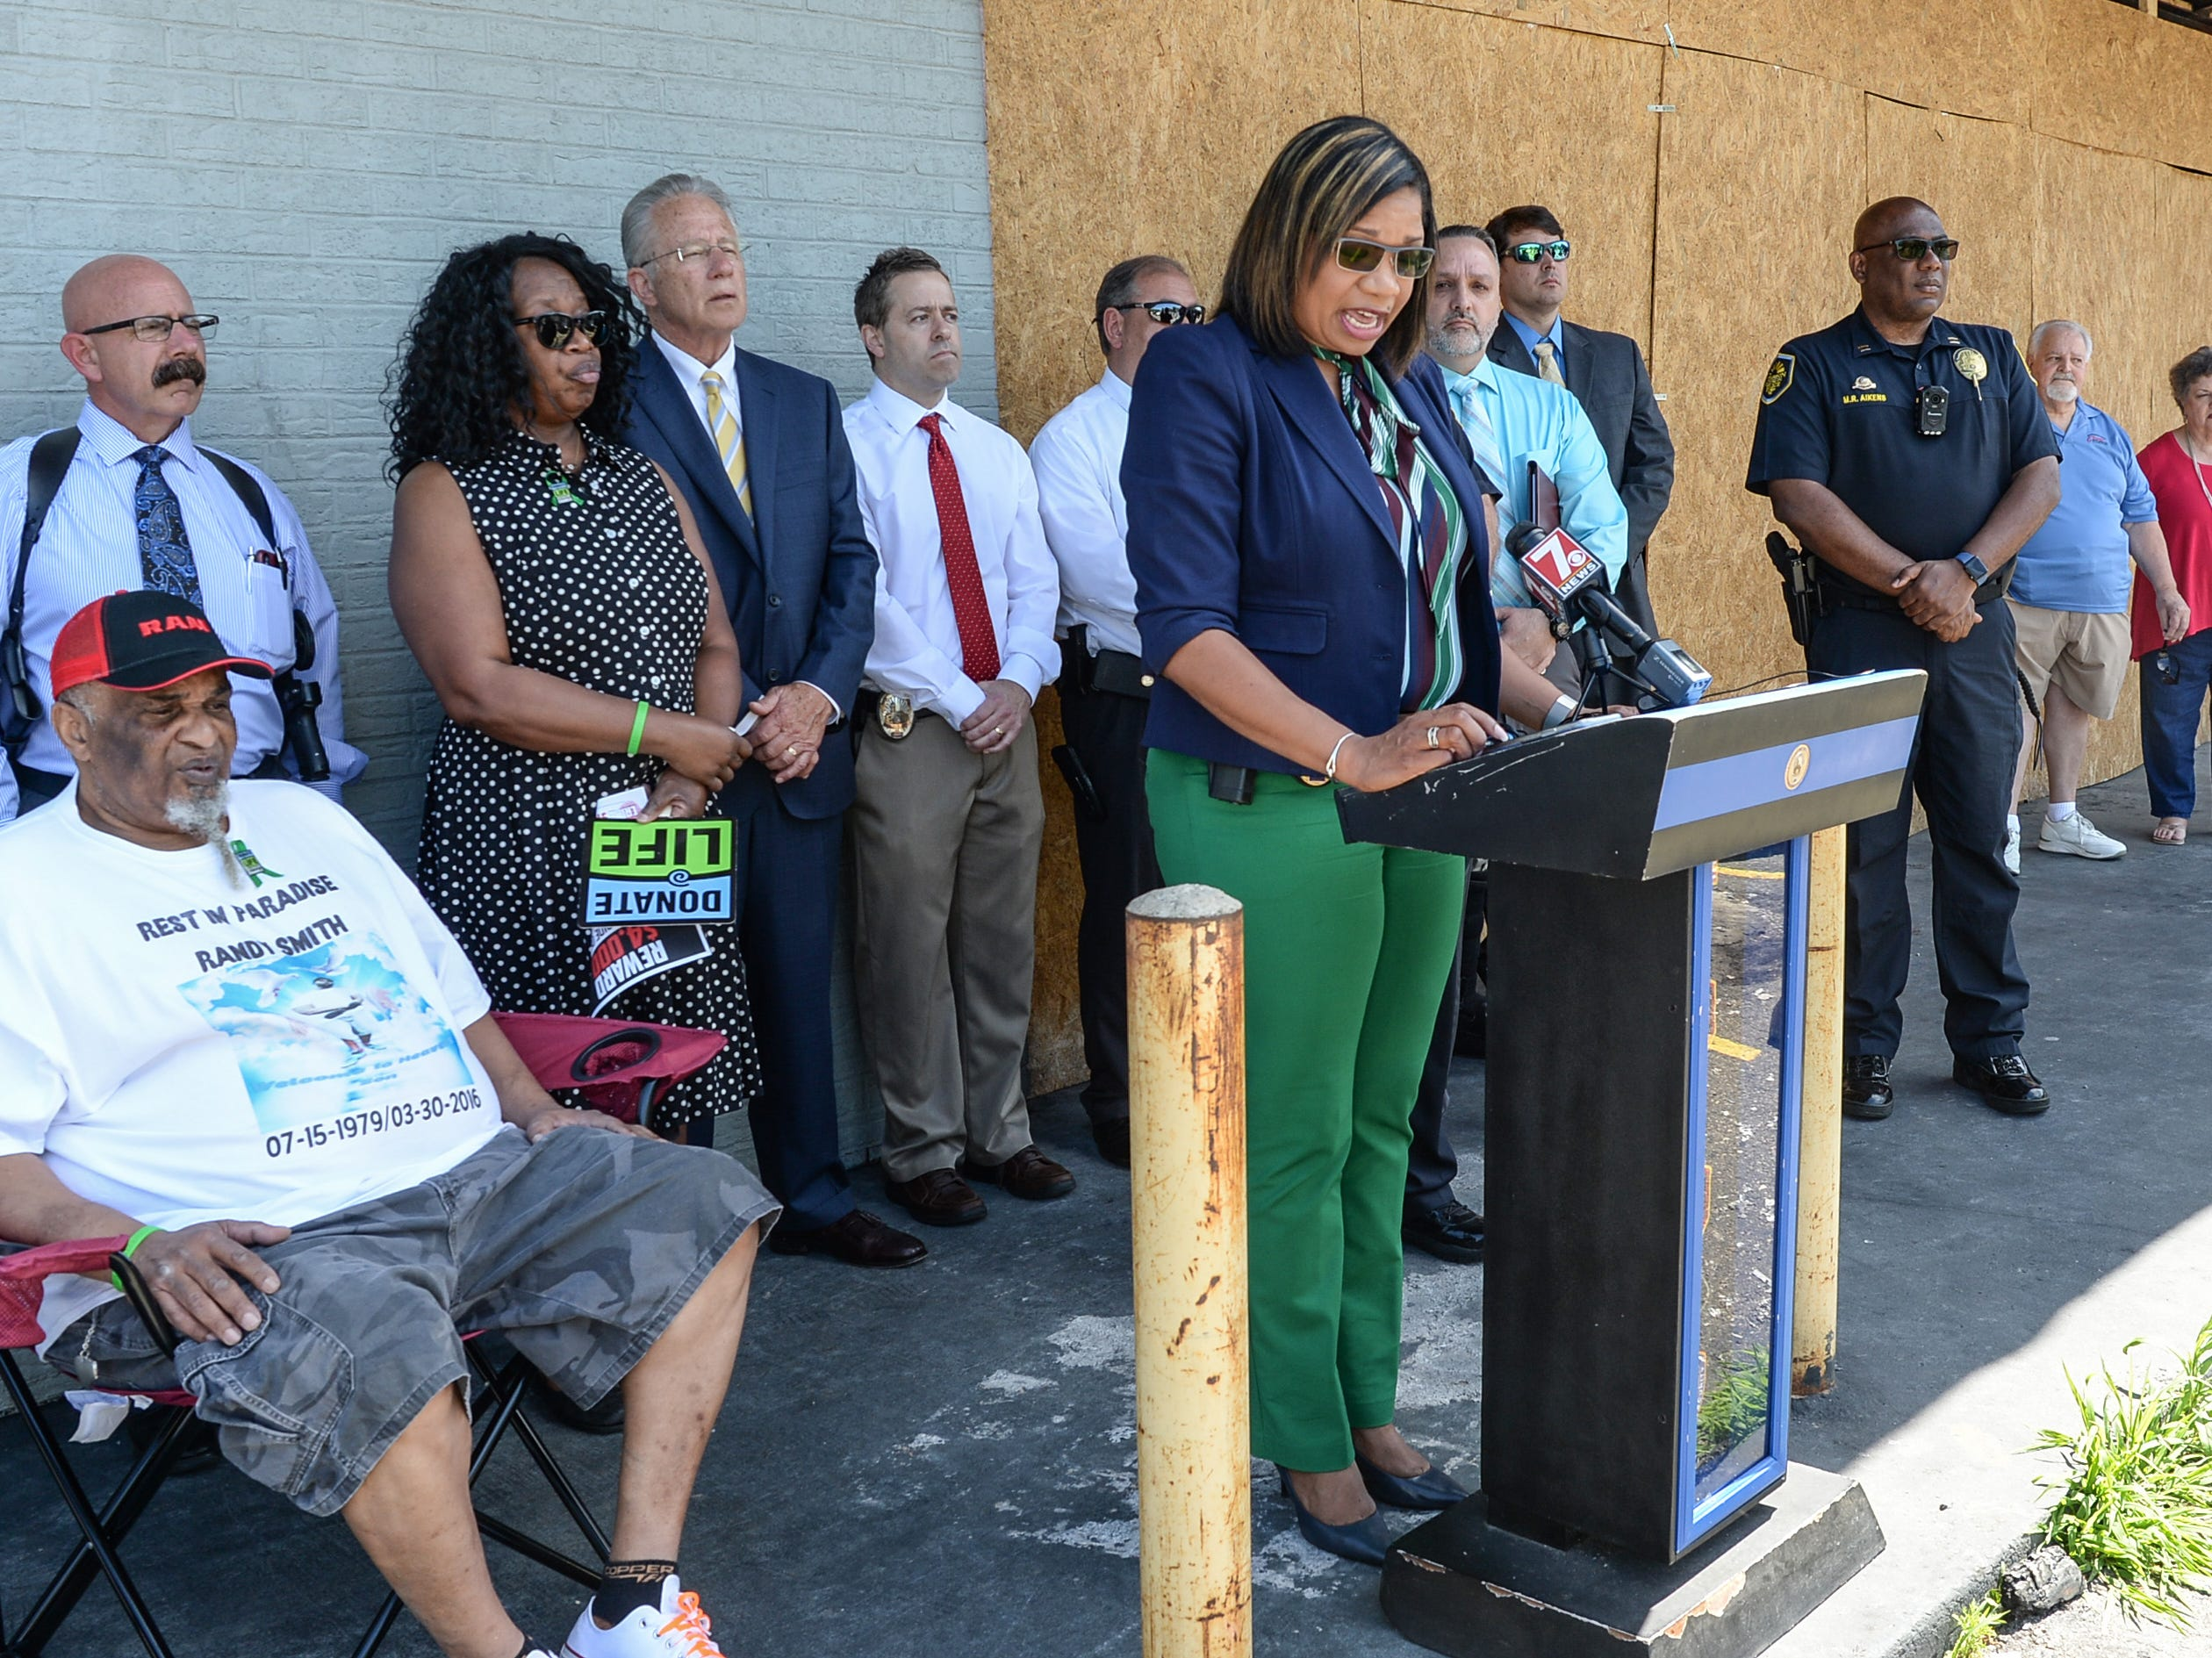 Anderson police Lt. Carla Roberson speaks at a press conference concerning the cold case homicide of Randy Smith on East Whitner Street in Anderson Tuesday. Anderson Area Crime Stoppers held the press conference at the site where Smith died, asking for the public to come forward with any tips.